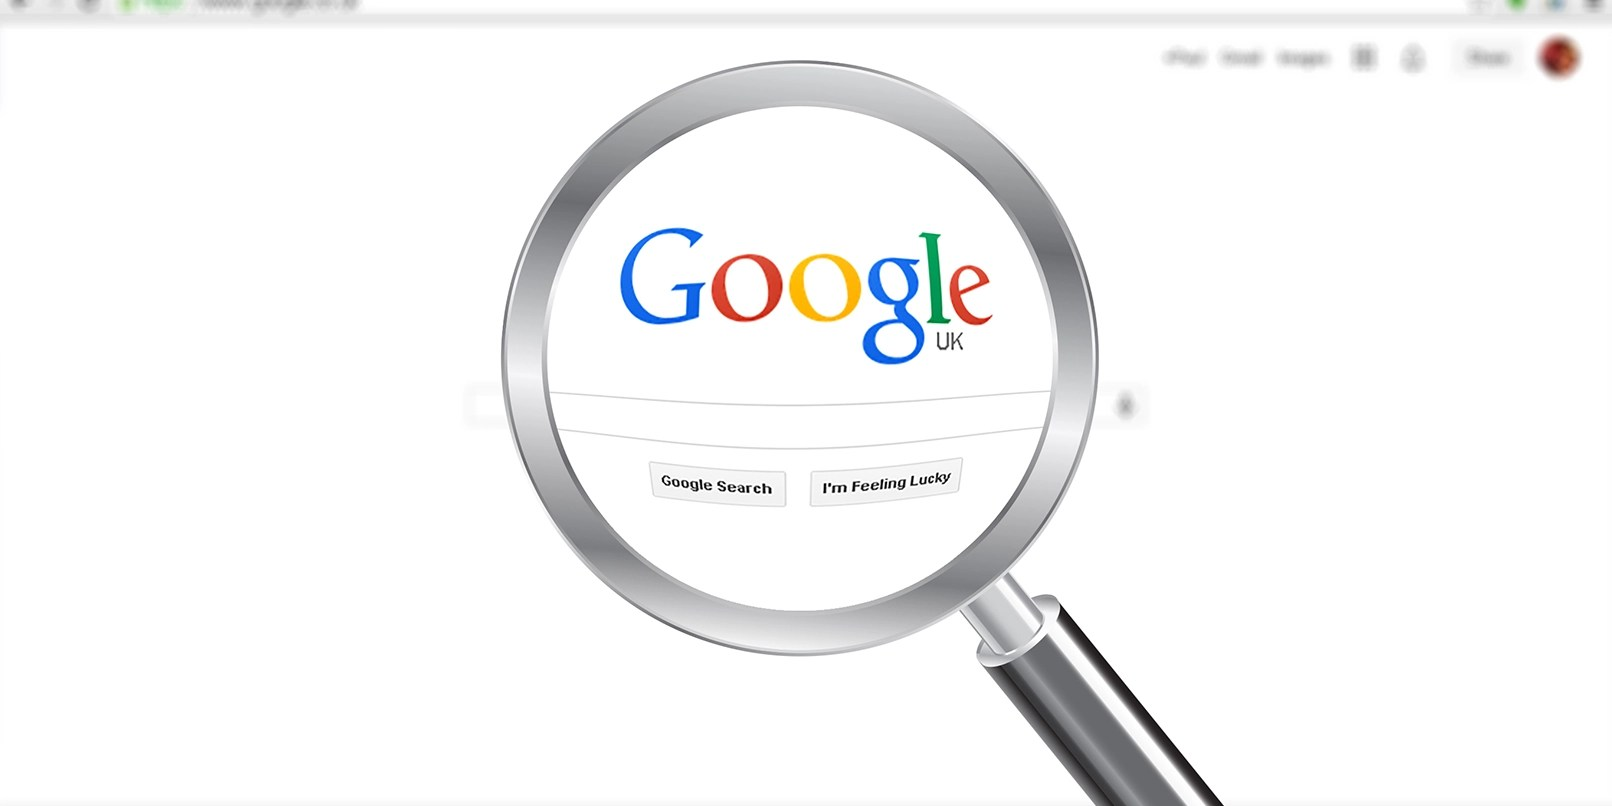 Google Search - Search Engine Marketing